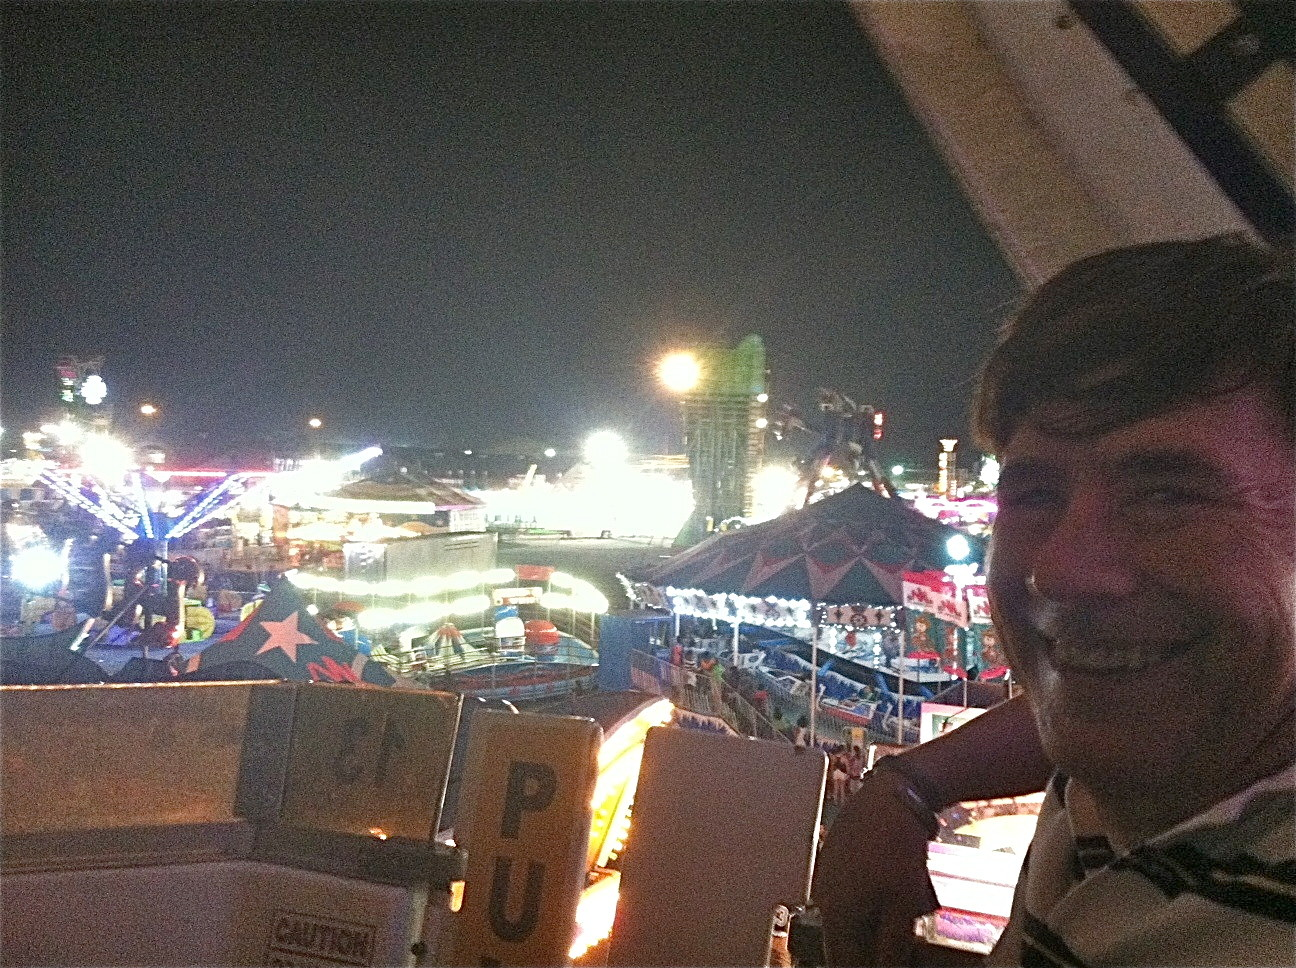 John on the Ferris wheel